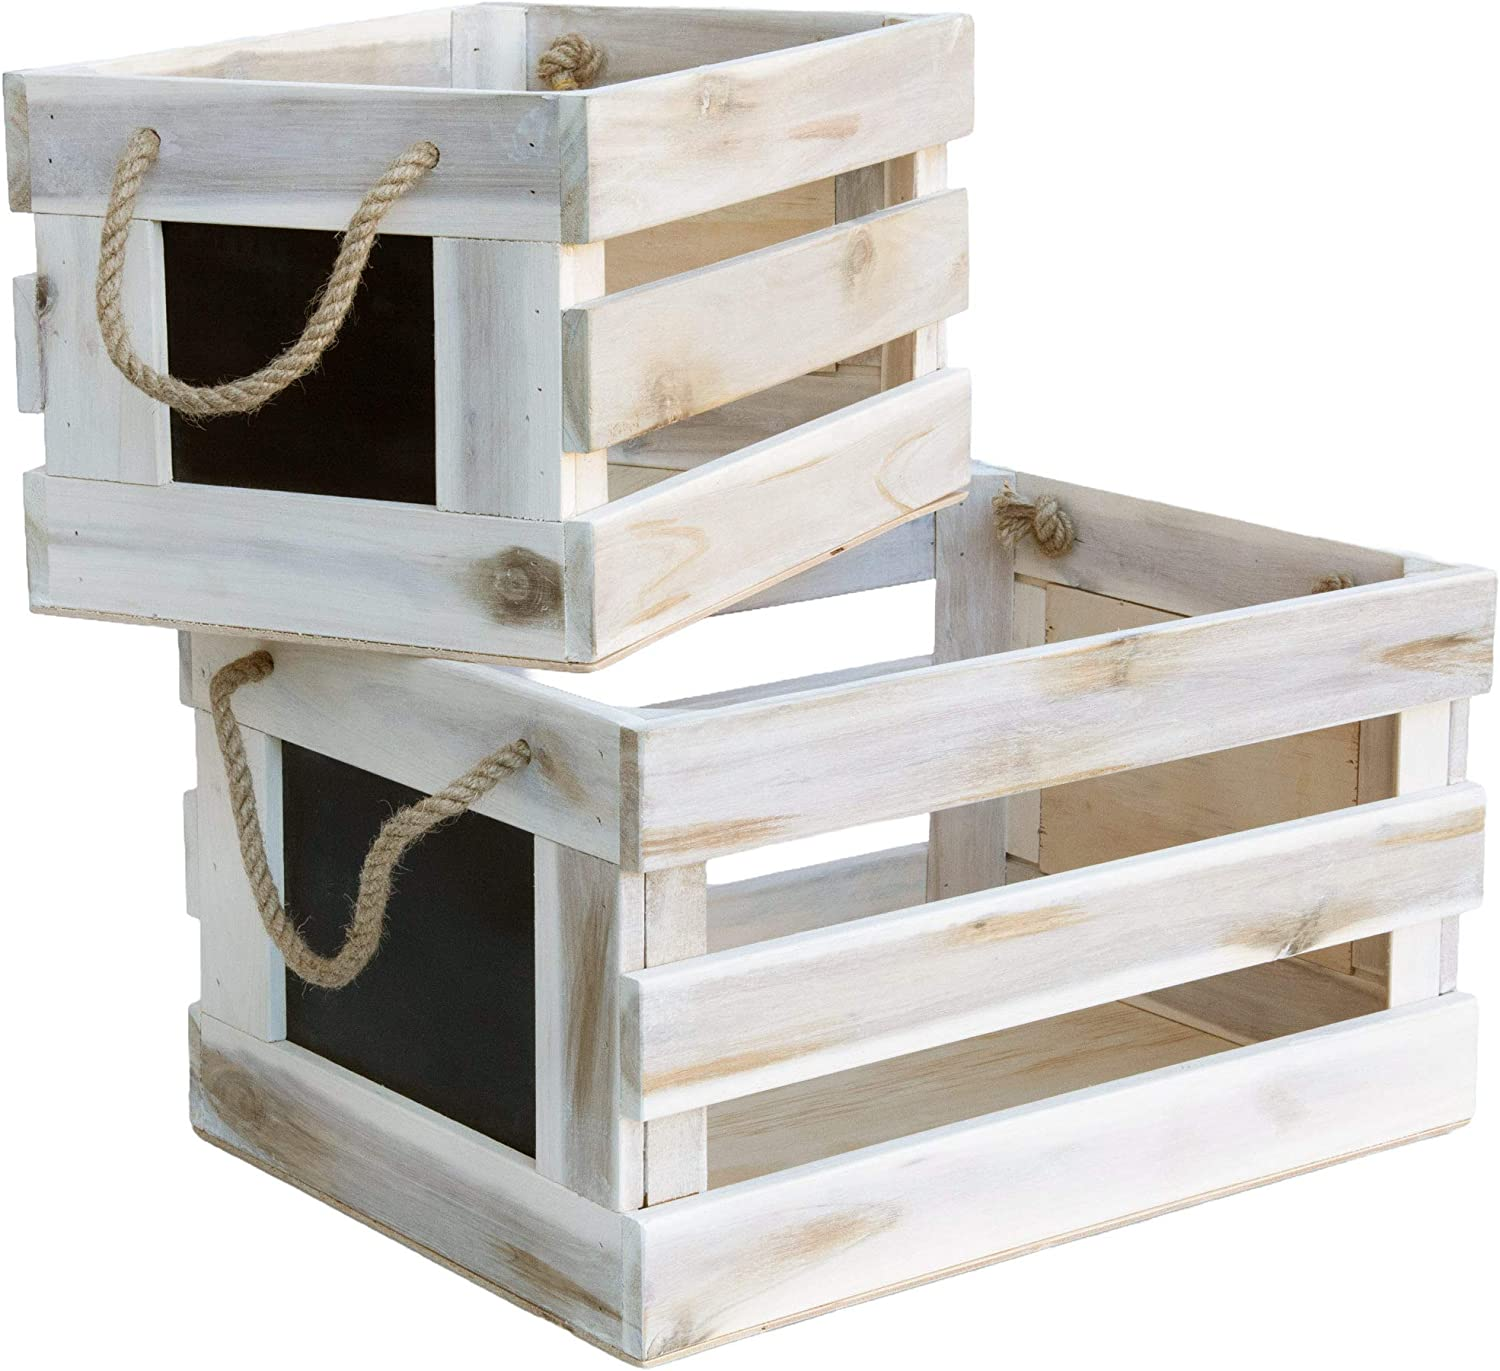 Modern Village White Wooden Crates Decorative Set with Chalk Face and Rope Handles, Rustic Storage Crates (18 and 15 Inch)